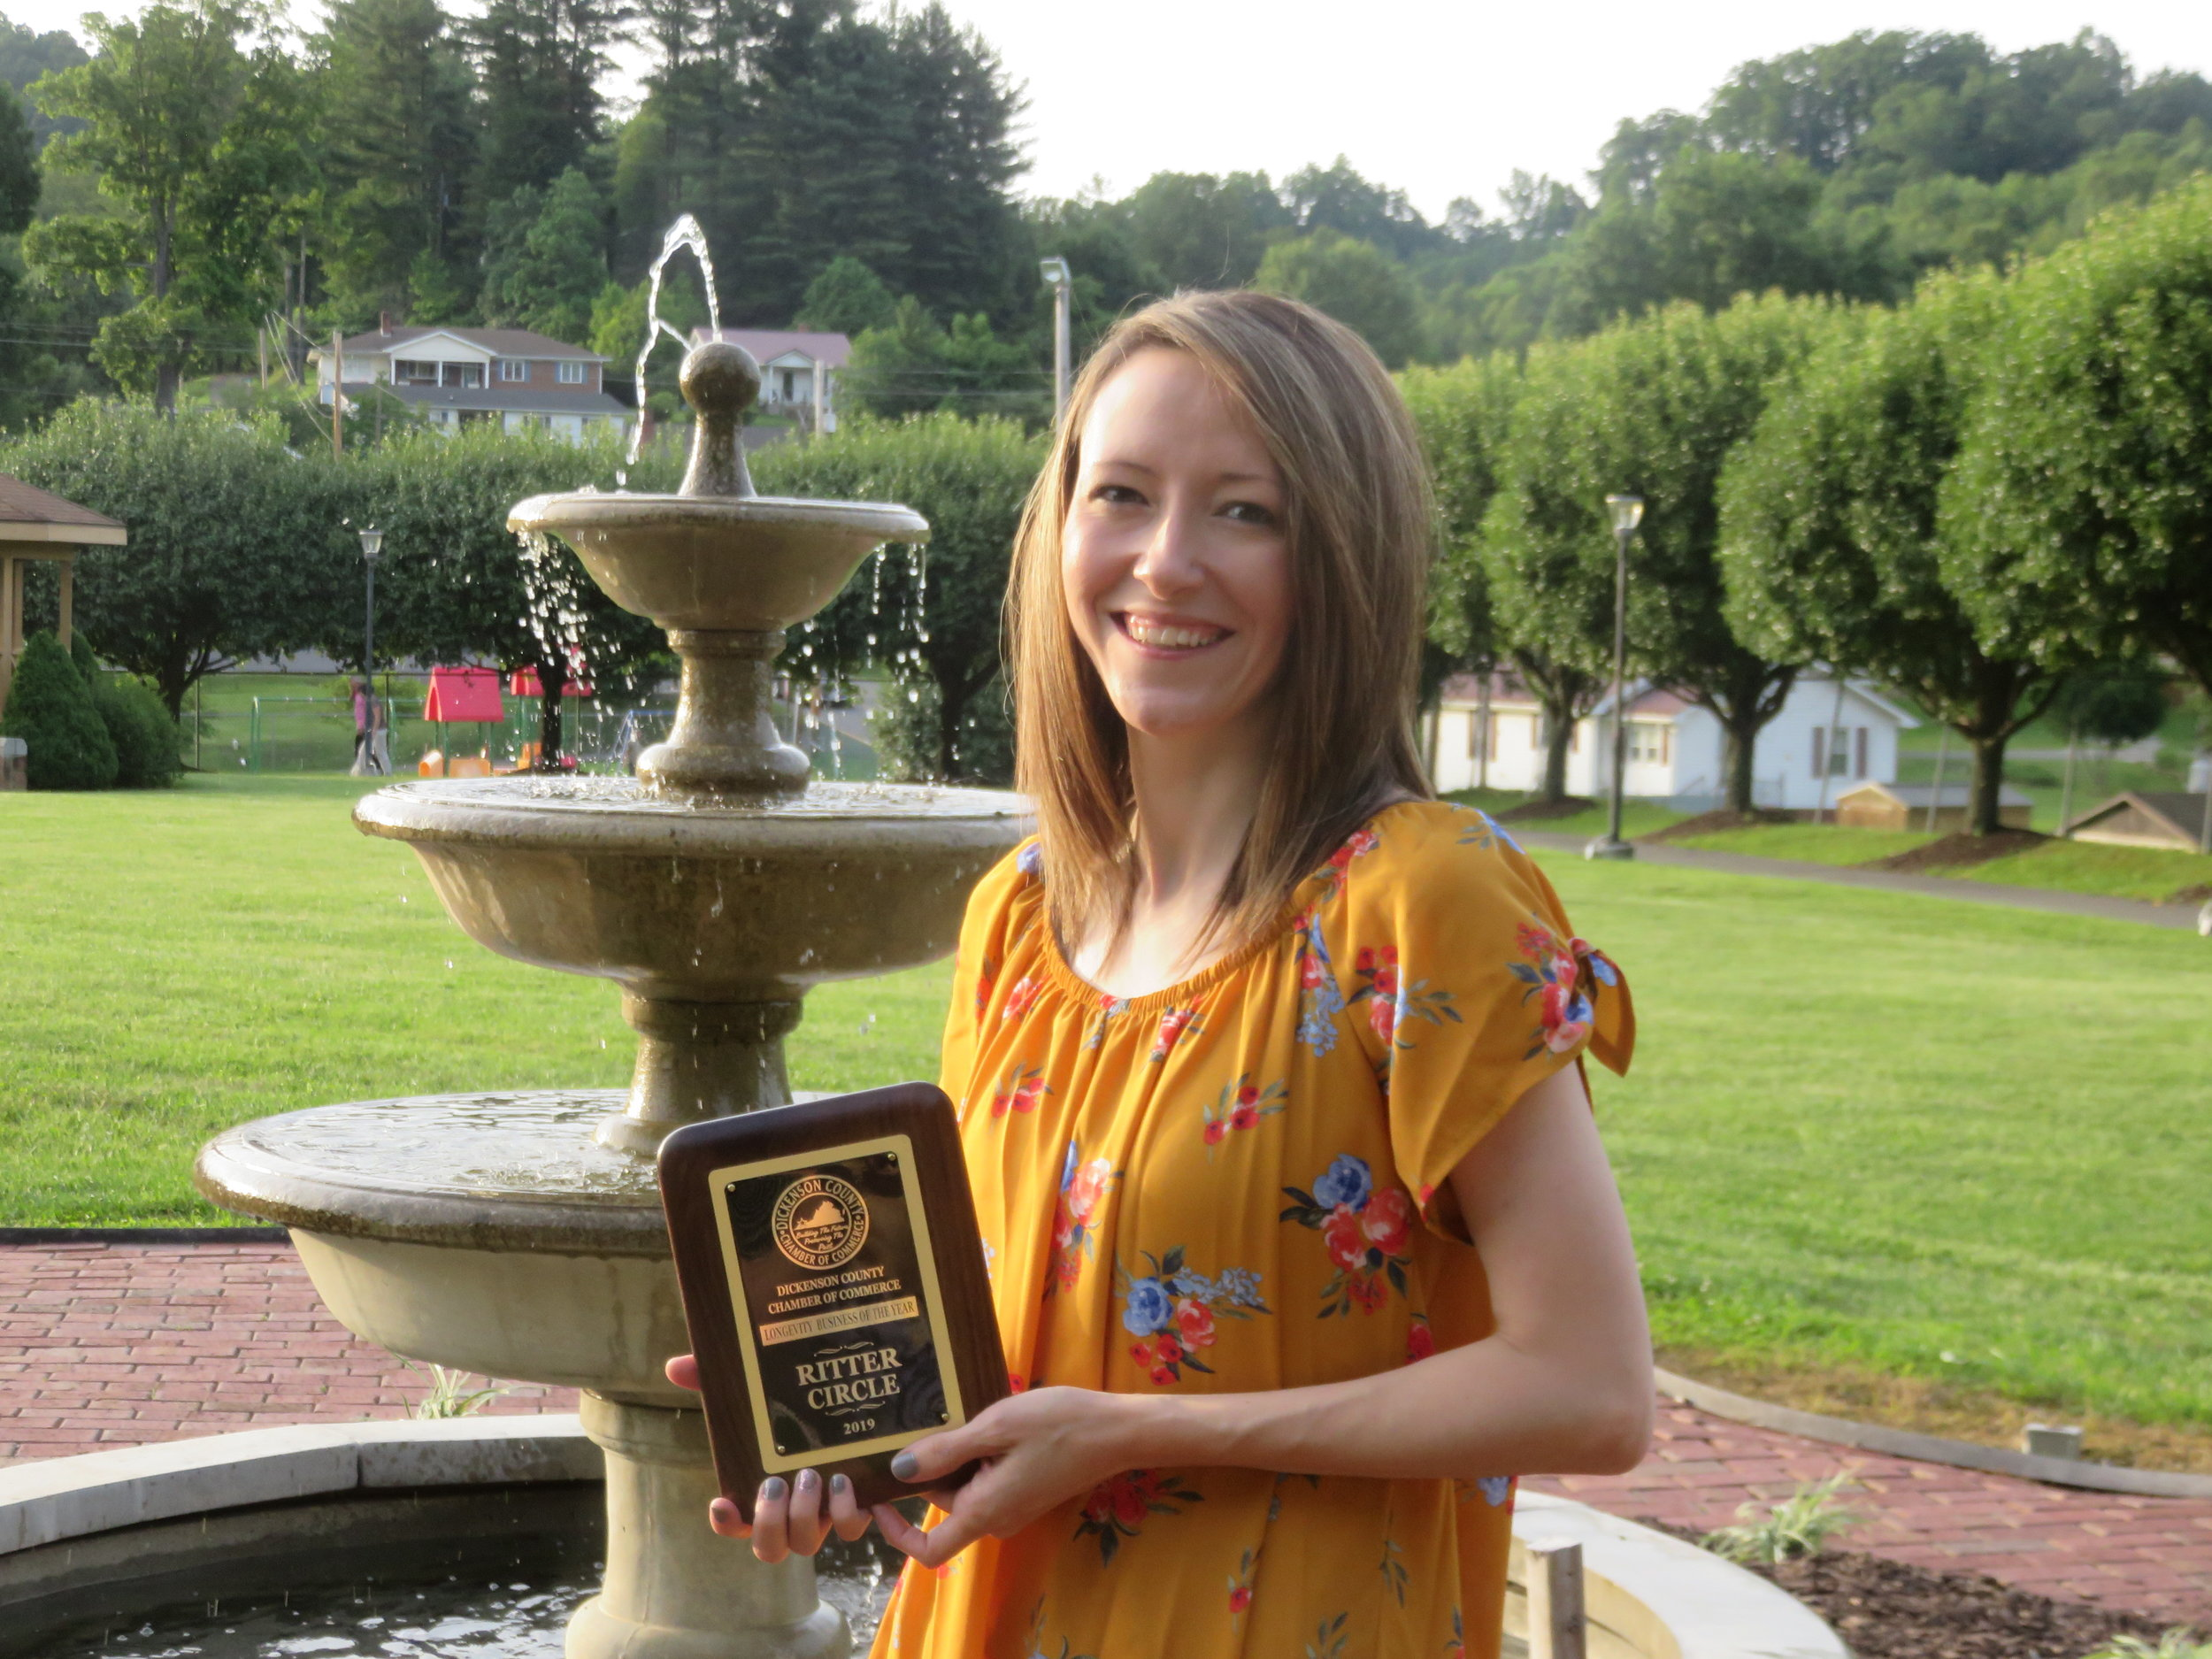 Brittany Bise accepting award for Ritter Circle, Inc.